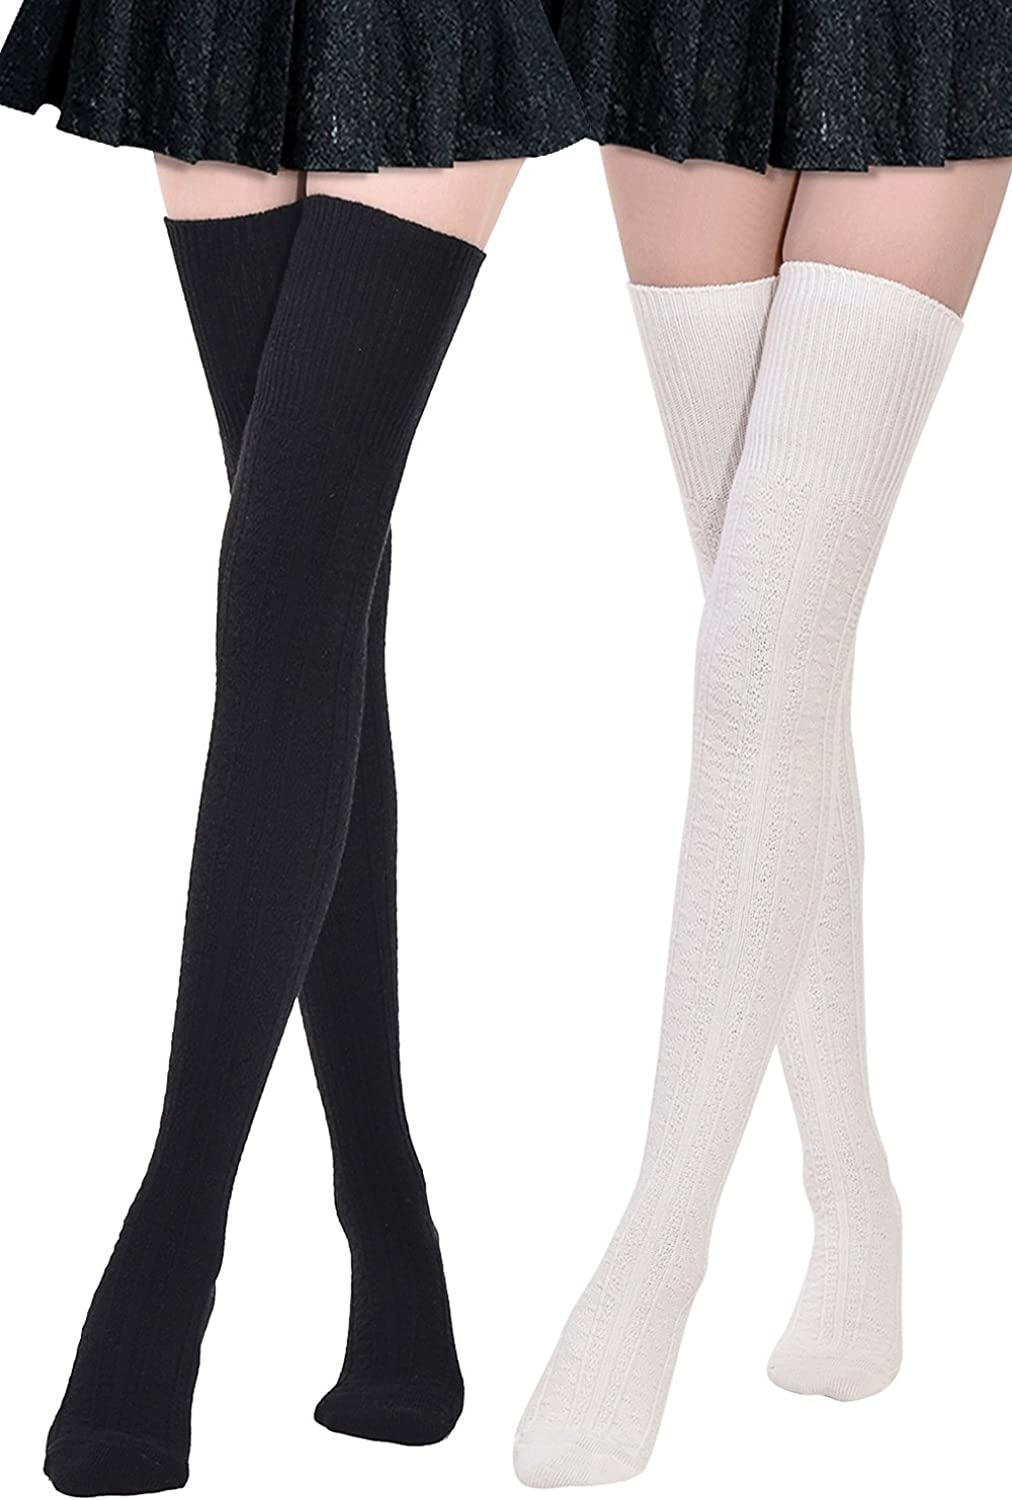 2 Pack juDanzy Knee High Team Color Tube Socks for Toddler and Youth Boys and Girls